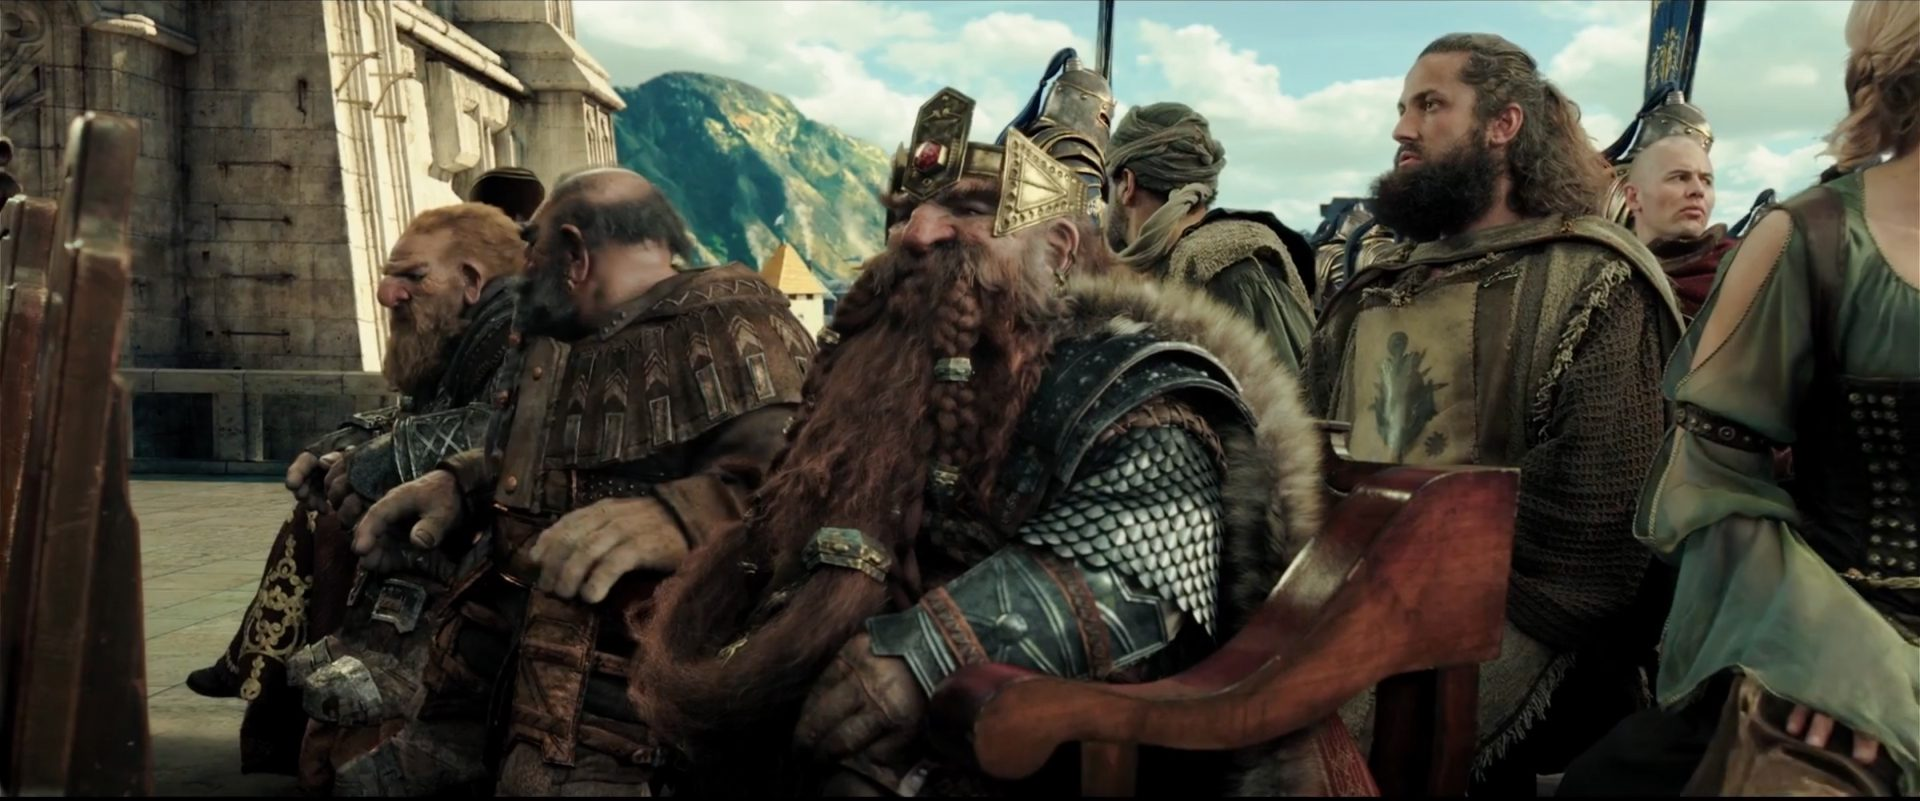 Warcraft Movie Official Trailer 2